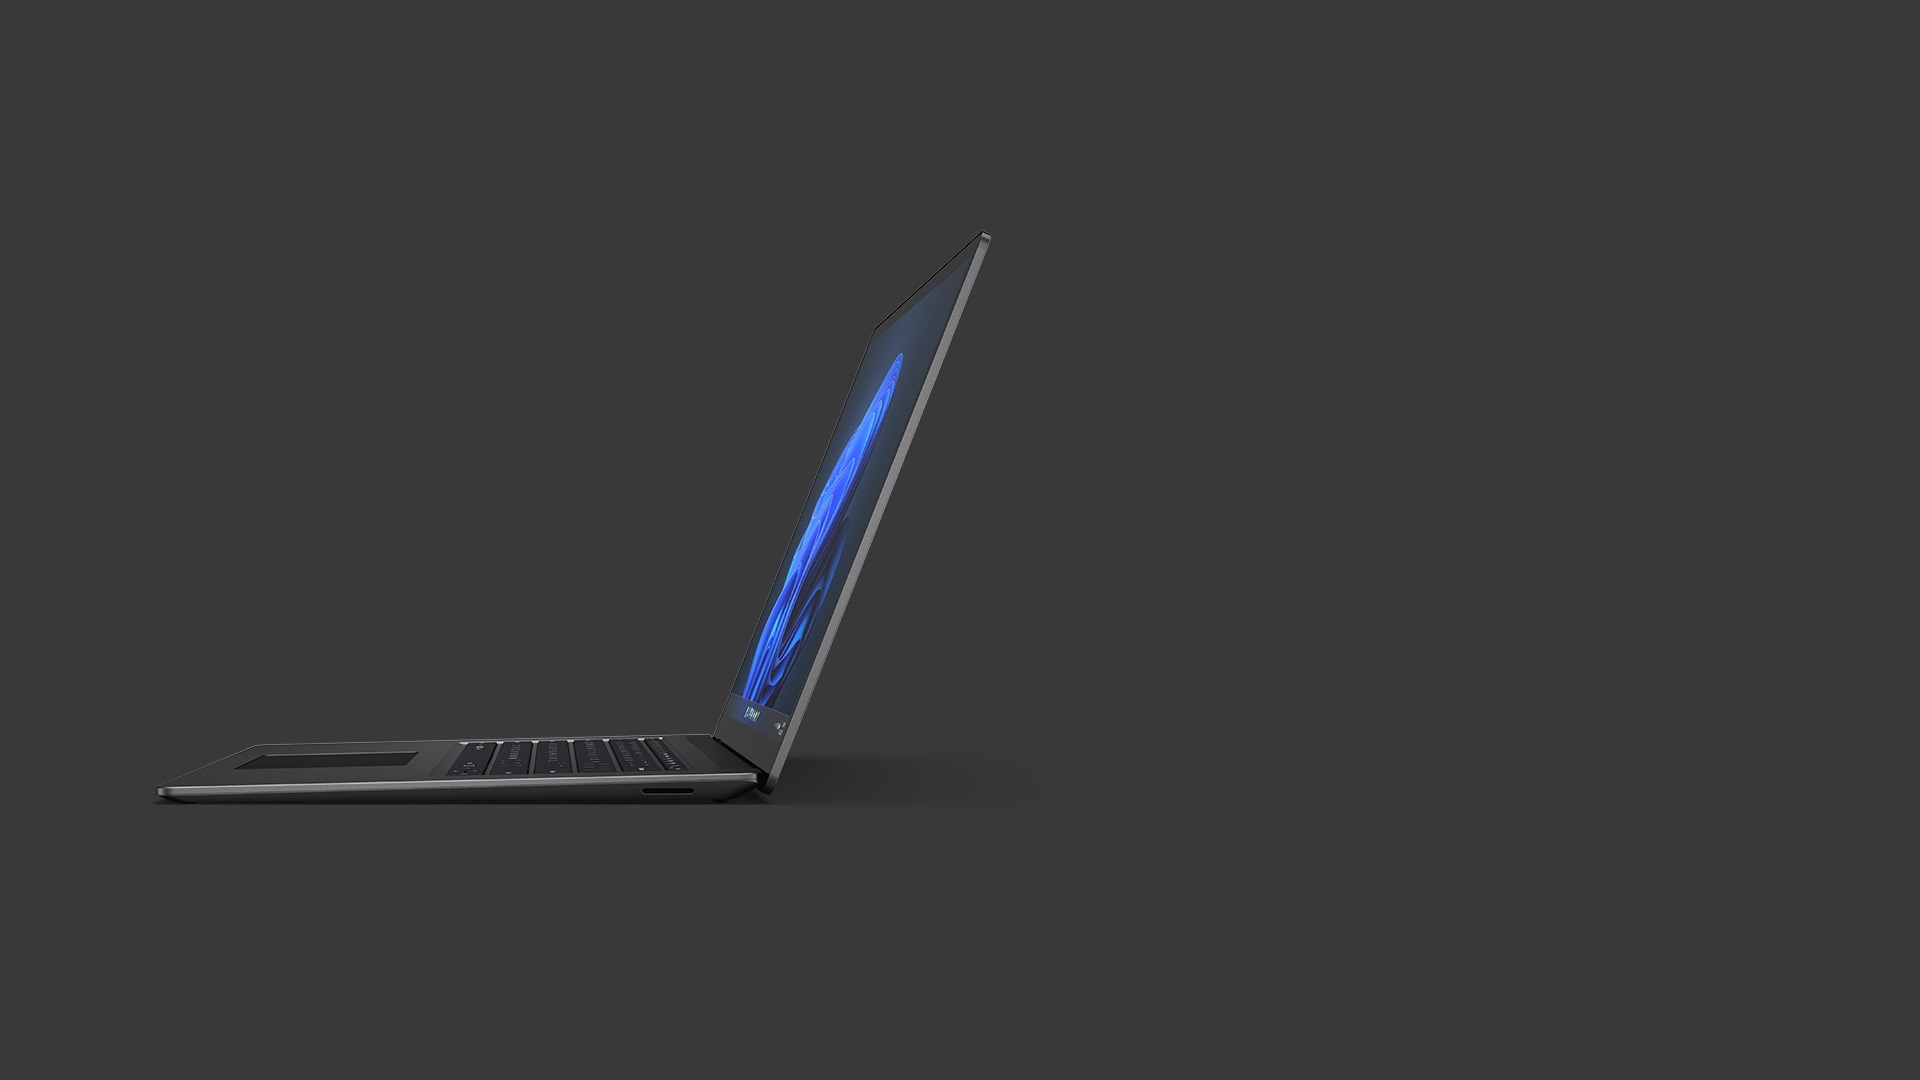 Surface Laptop 4 15-inch shown in Matte Black metal